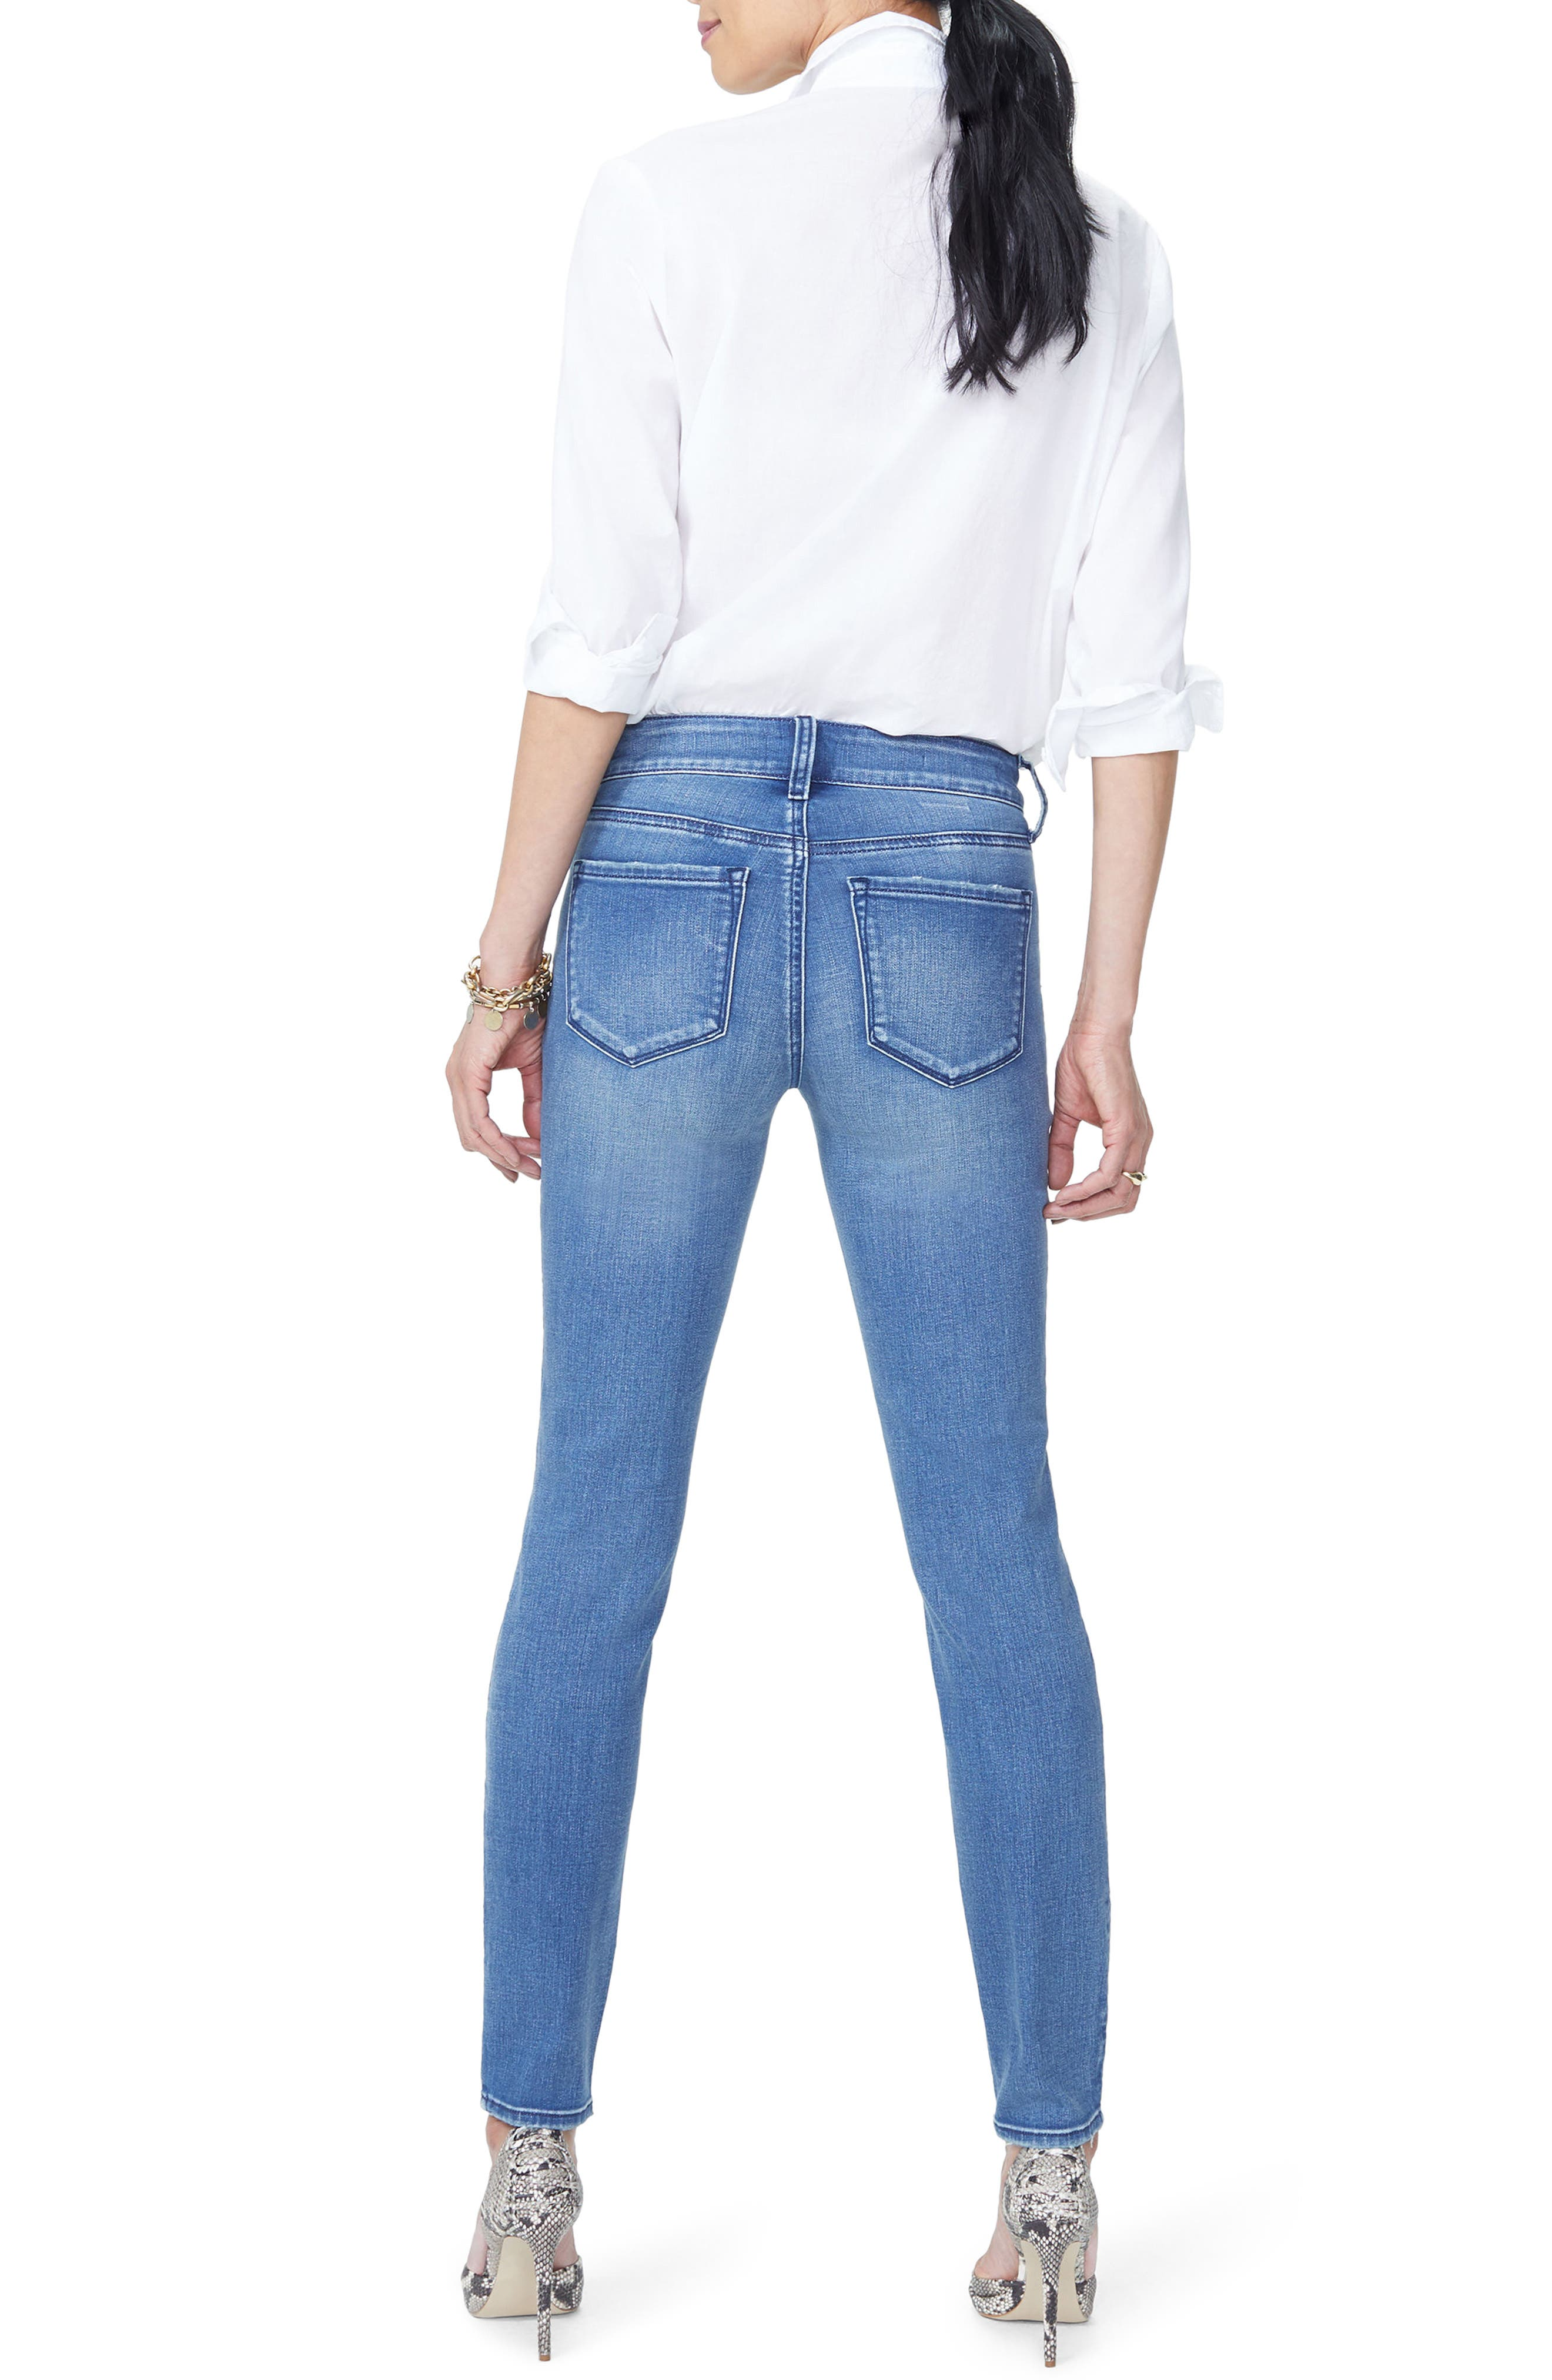 Ami Stretch Skinny Jeans,                             Alternate thumbnail 2, color,                             Wishful